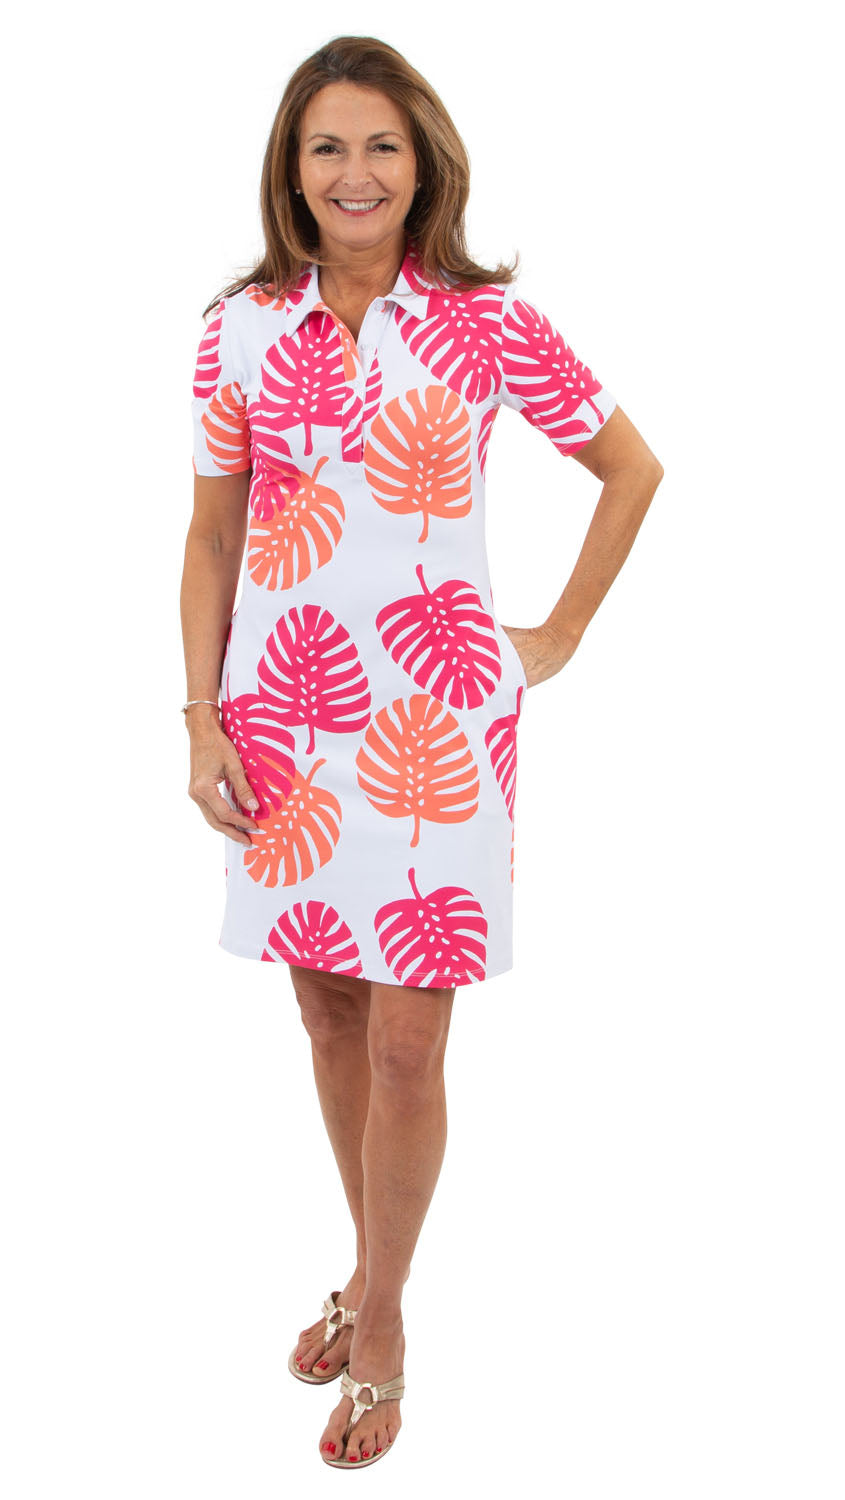 Port Short Sleeve Dress - Hot Pink/Salmon Dancing Palms-SAMPLE FINAL SALE